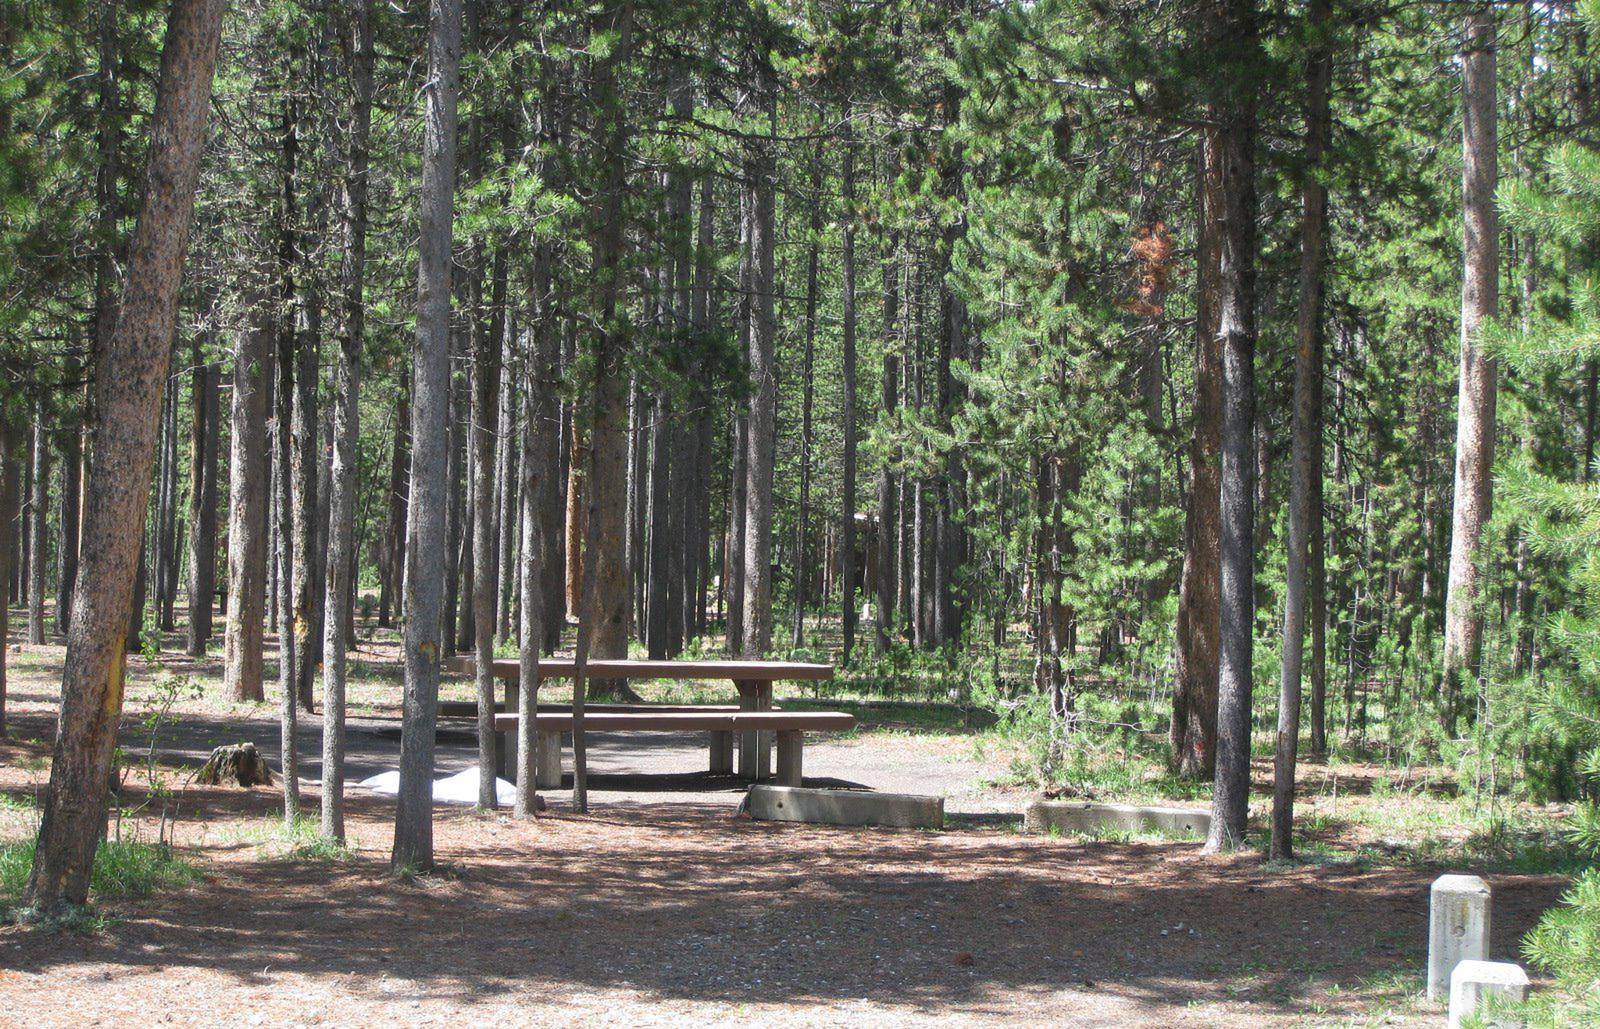 Site C9, surrounded by pine trees, picnic table & fire ringSite C9